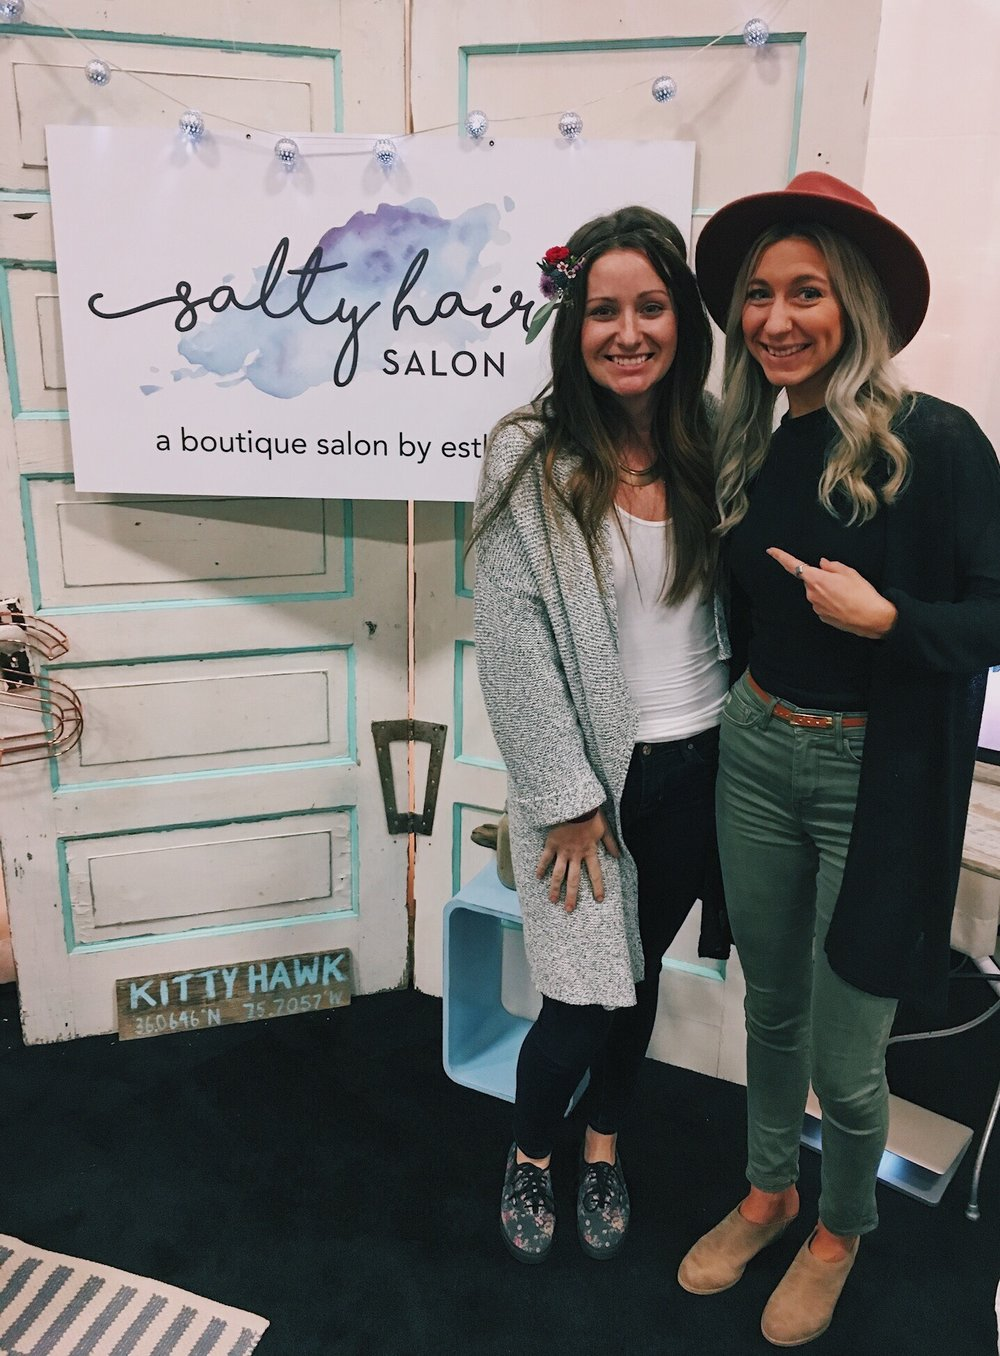 One of our salty Brides that booked for the spring of 2017 stopped by our booth! Chel, you're awesome and we so enjoyed beautifying you for your wedding experience!